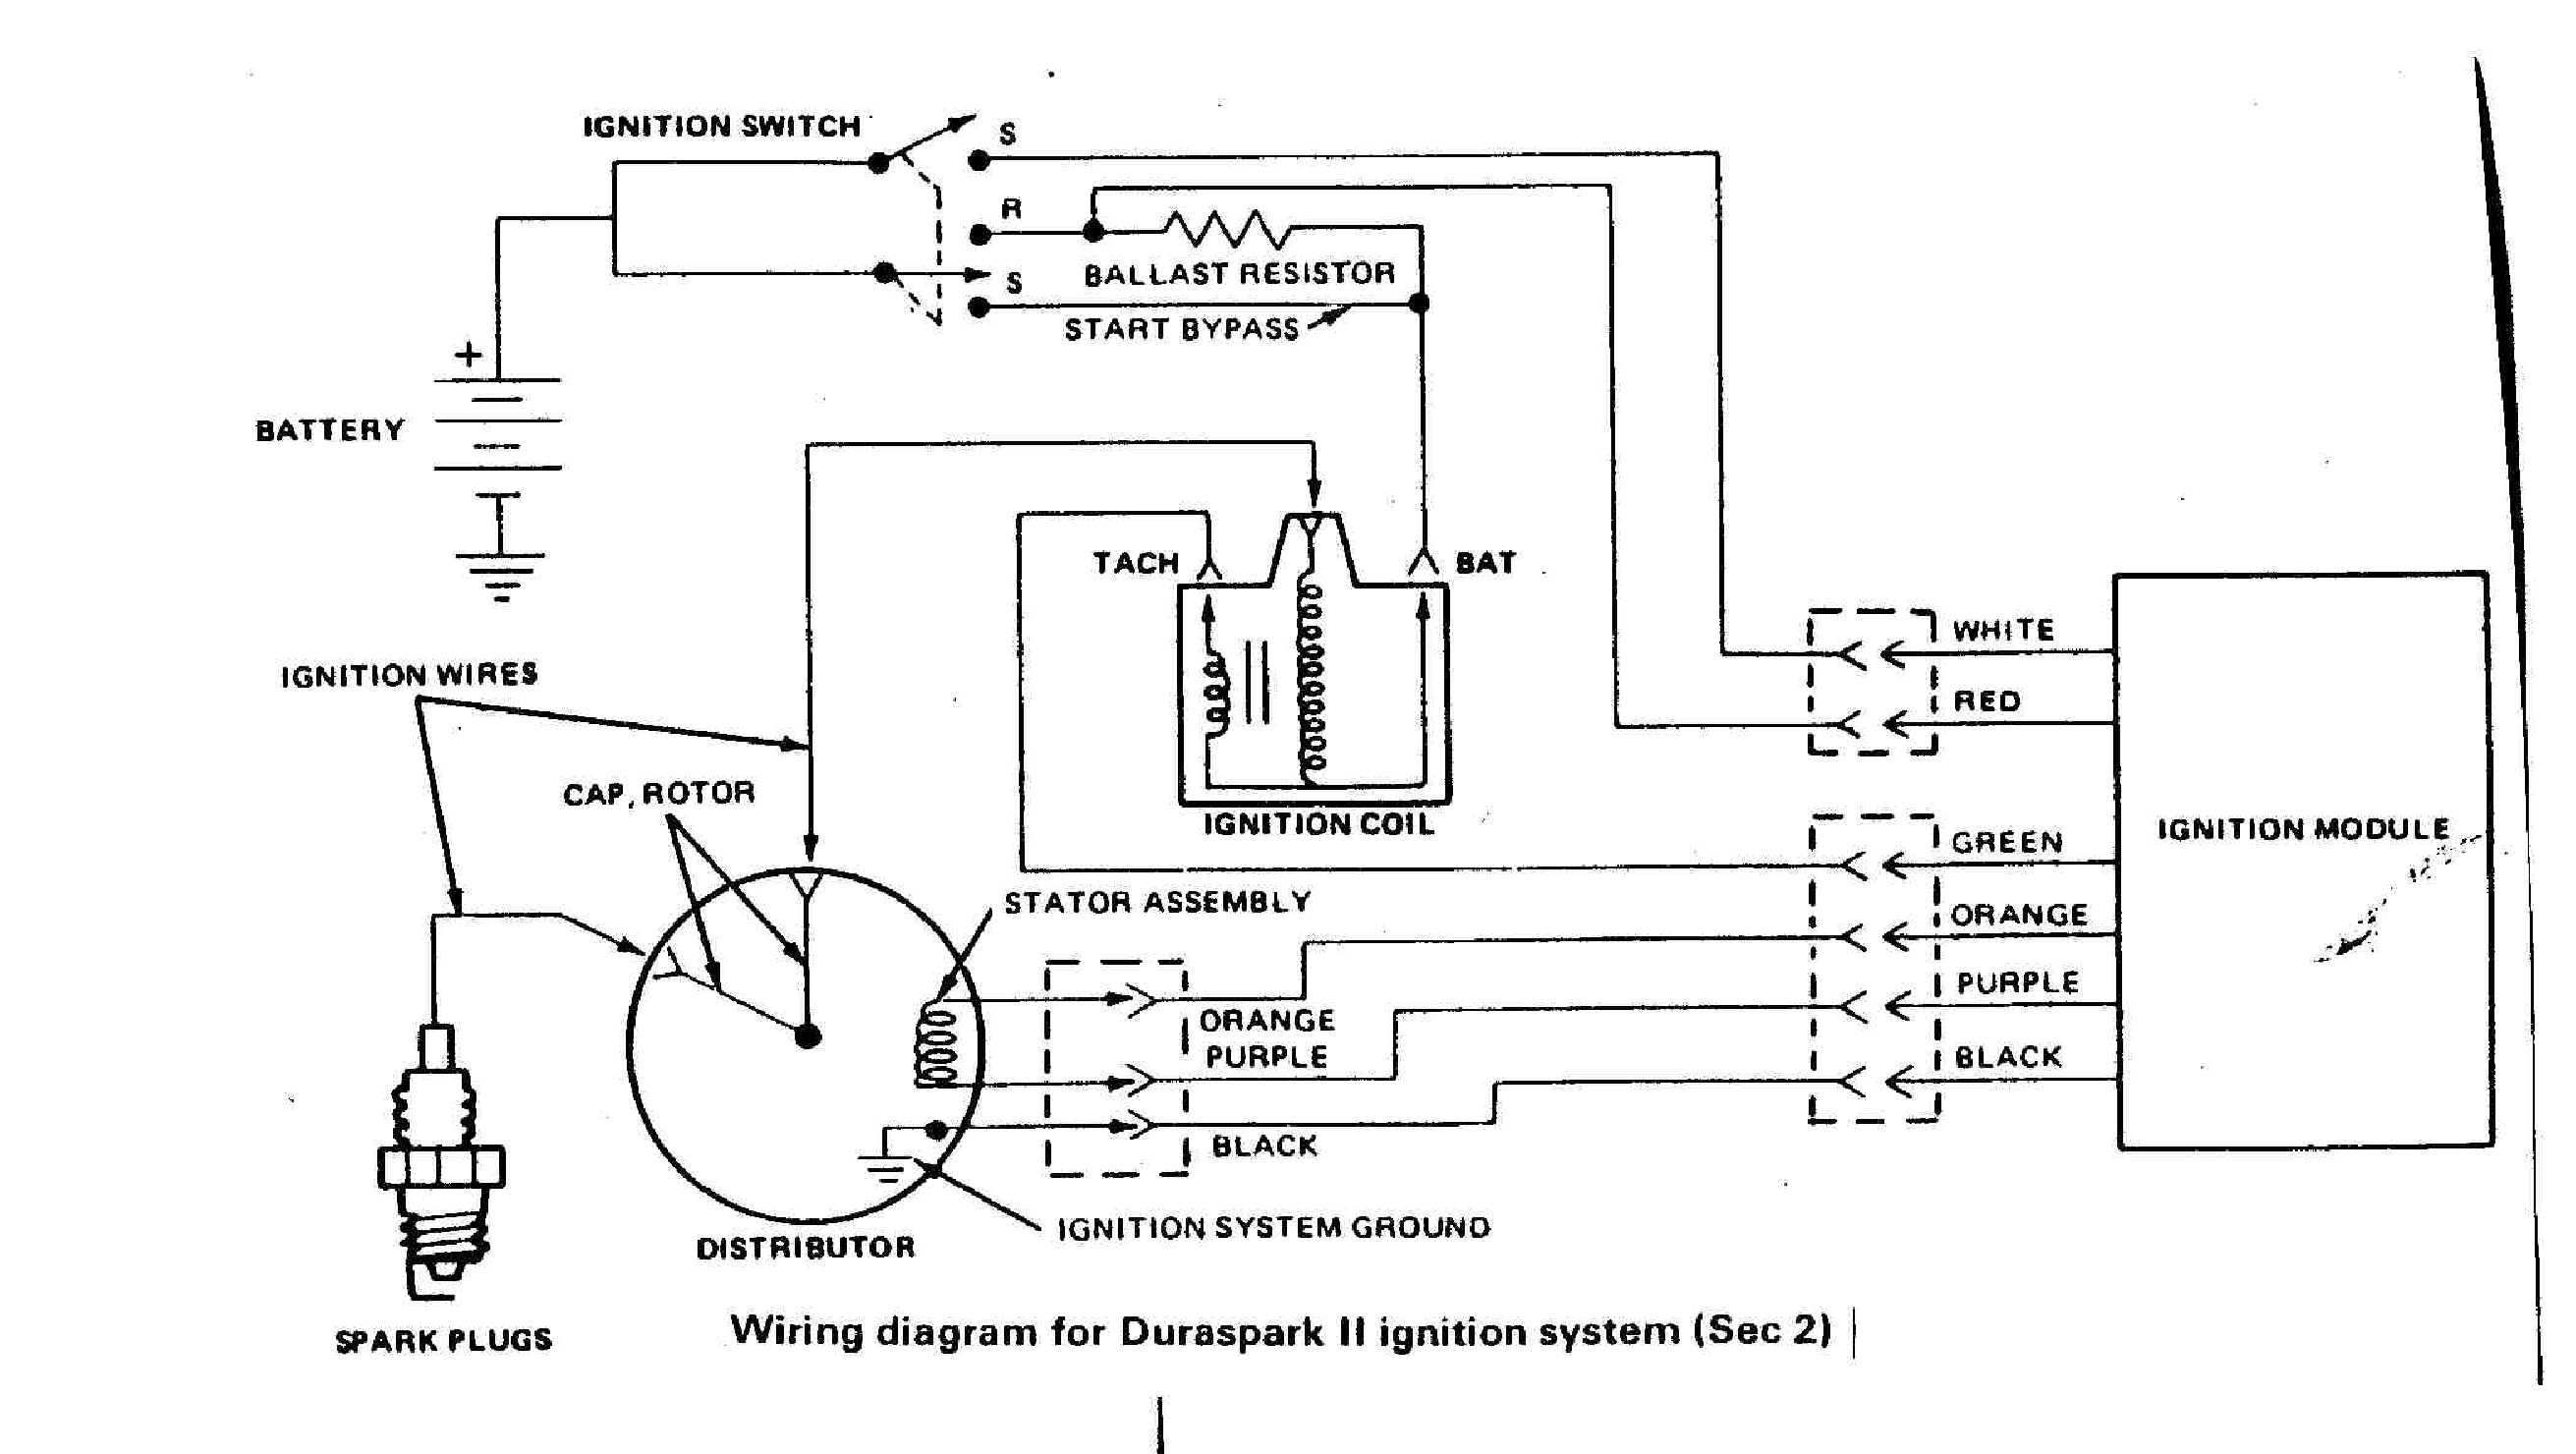 1984 ford f150 wiring diagram 1984 image wiring 1984 ford f 150 starter wiring diagram 1984 auto wiring diagram on 1984 ford f150 wiring